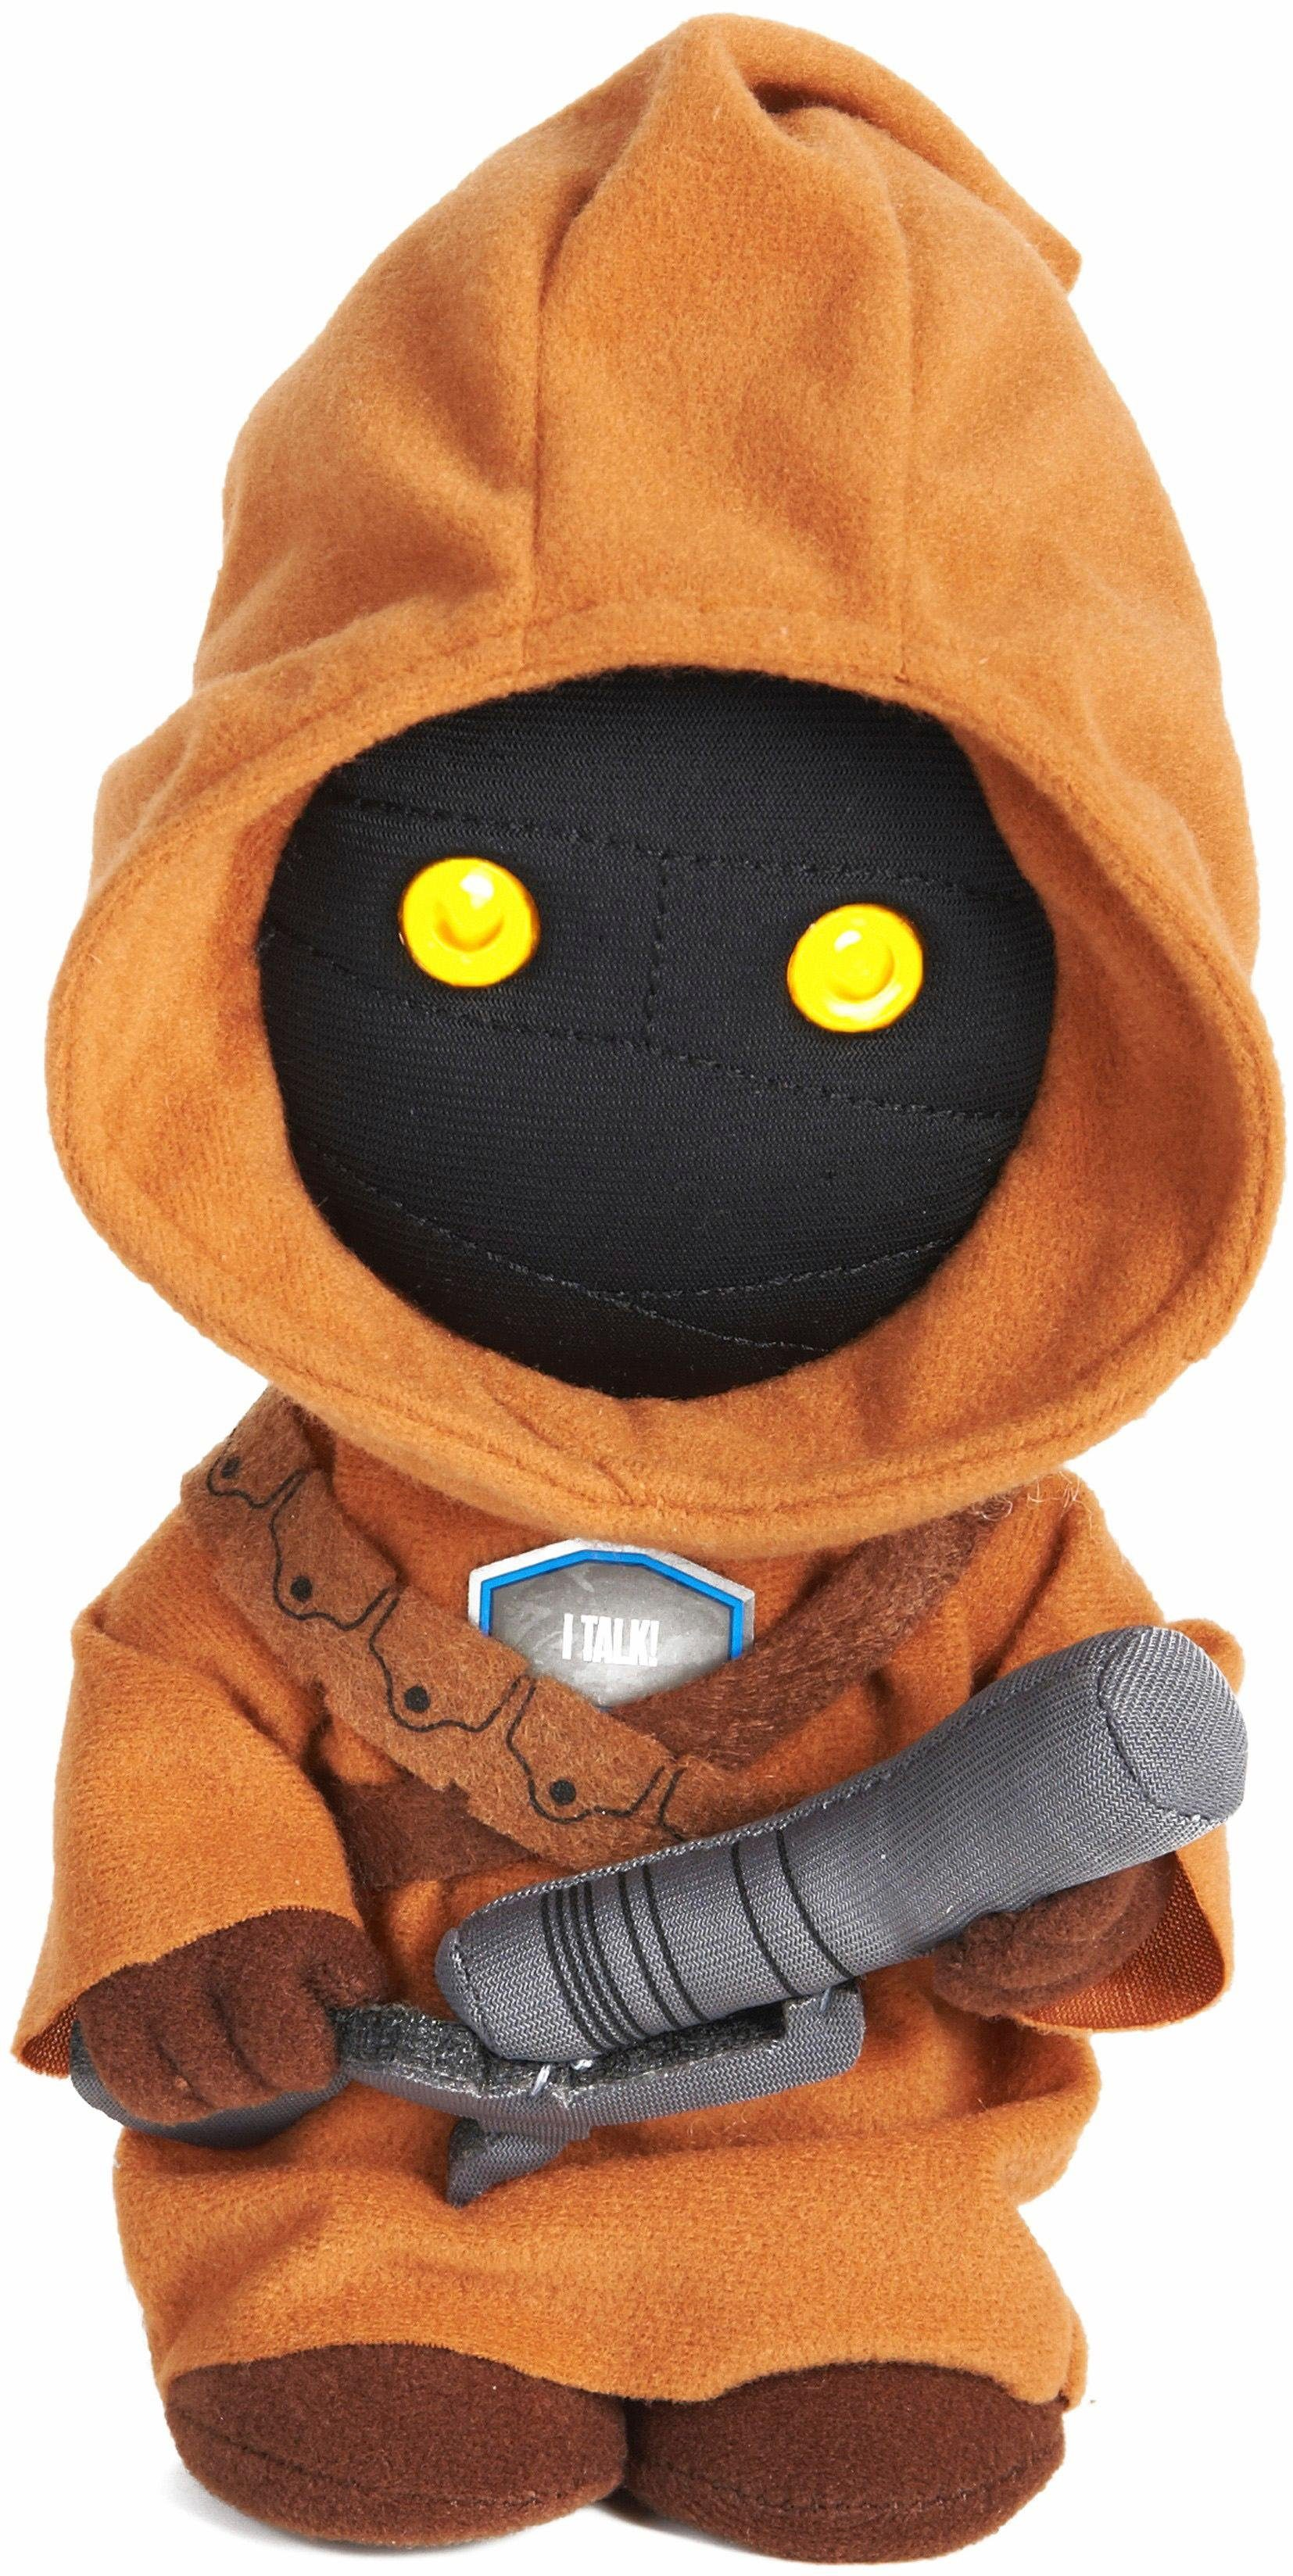 Plüschfigur mit Licht und Sound, »Disney Star Wars™, Collectors Edition, Jawa, ca. 23 cm«